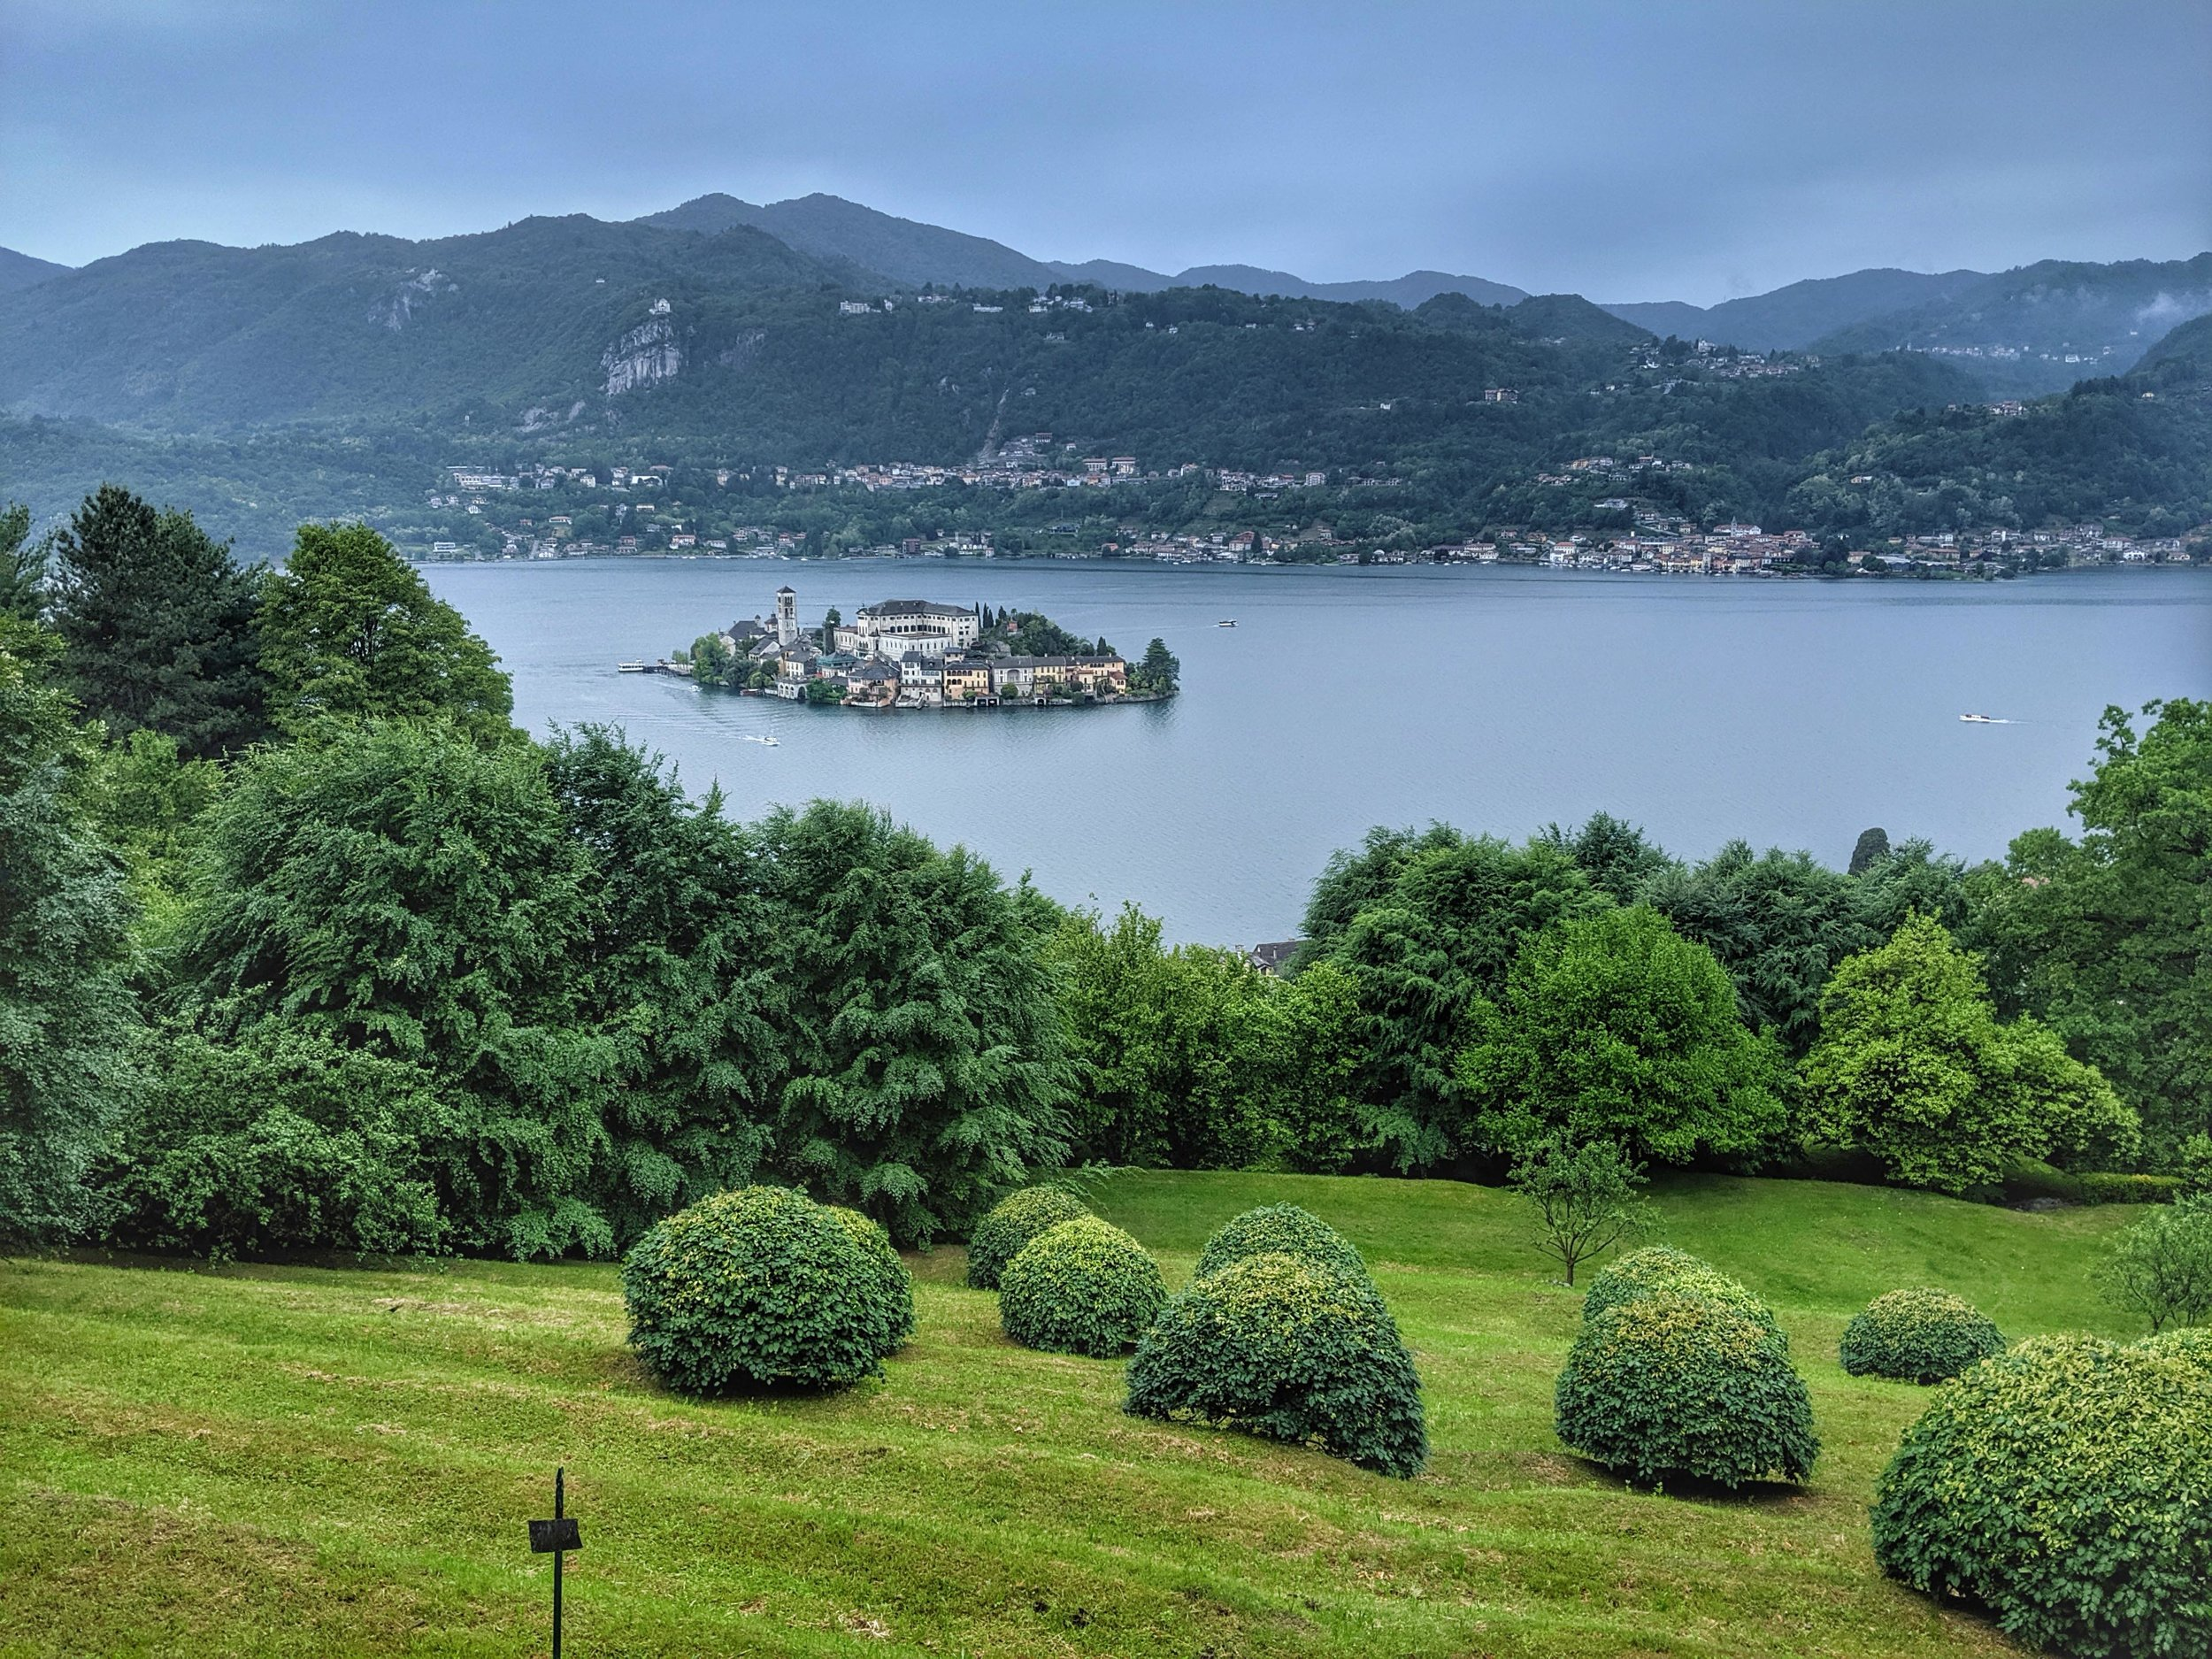 Views from atop of Orta San Guilio